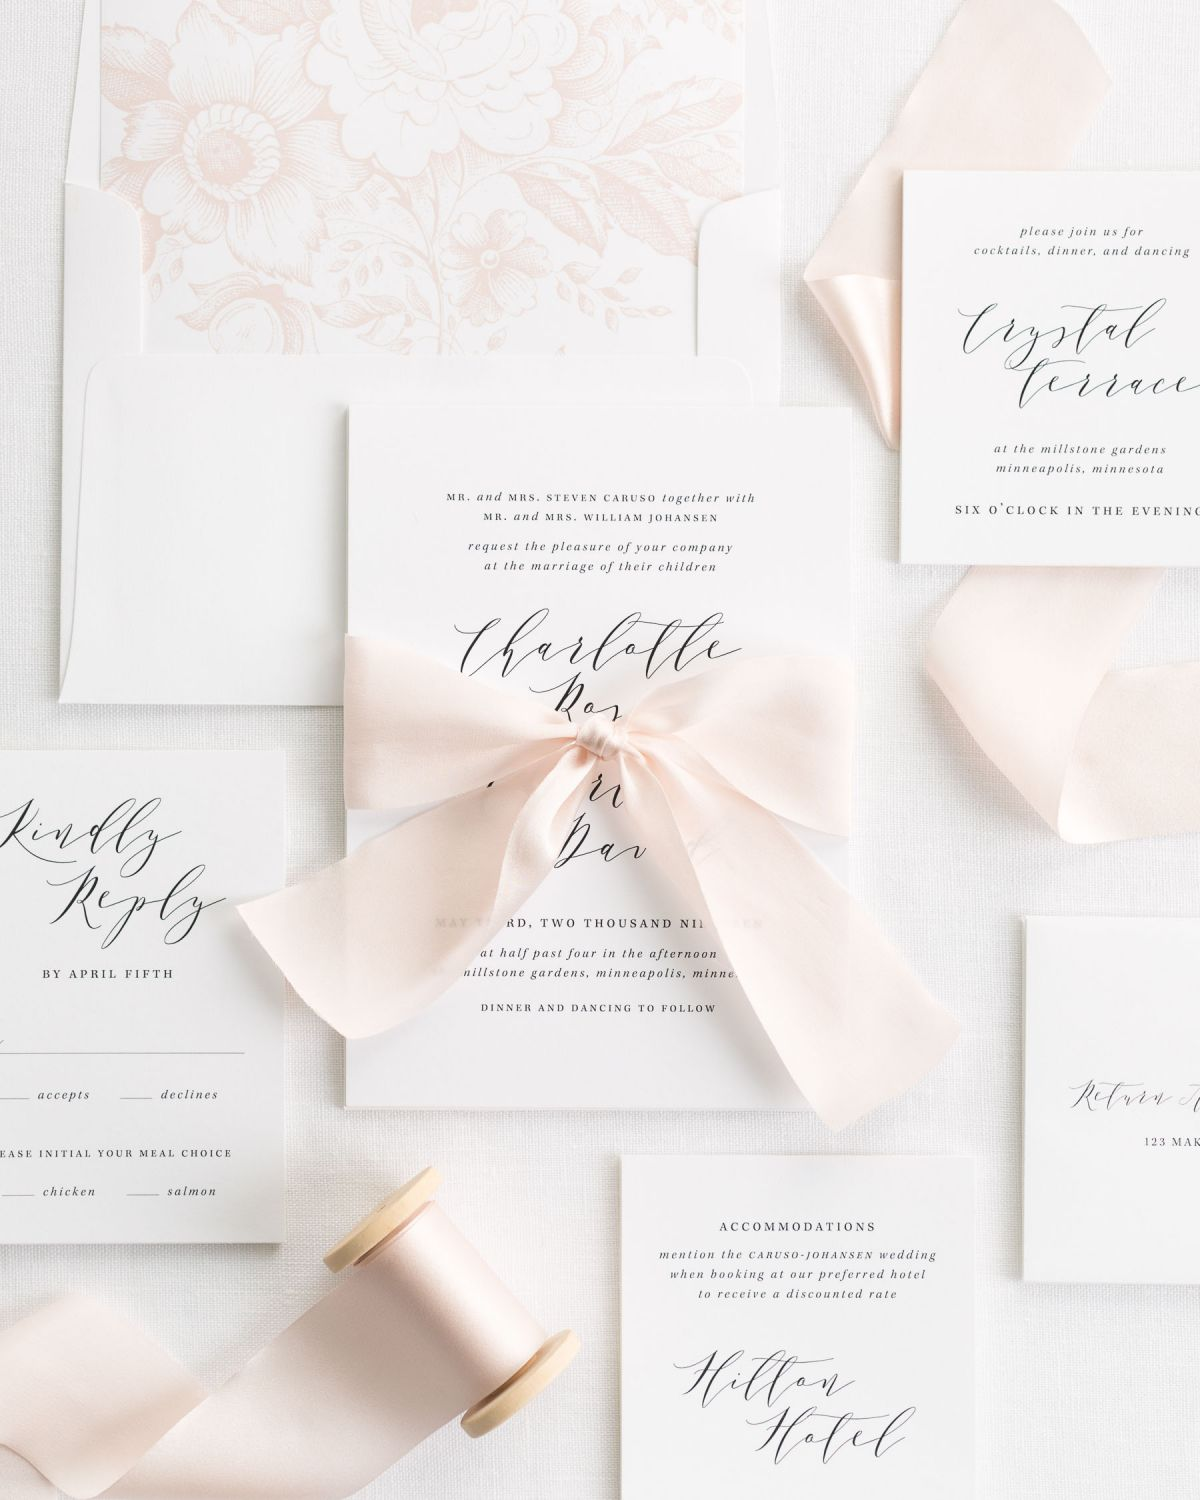 Complete Wedding Invitation Suite with Pale Pink Silk Riboon and Enclosures